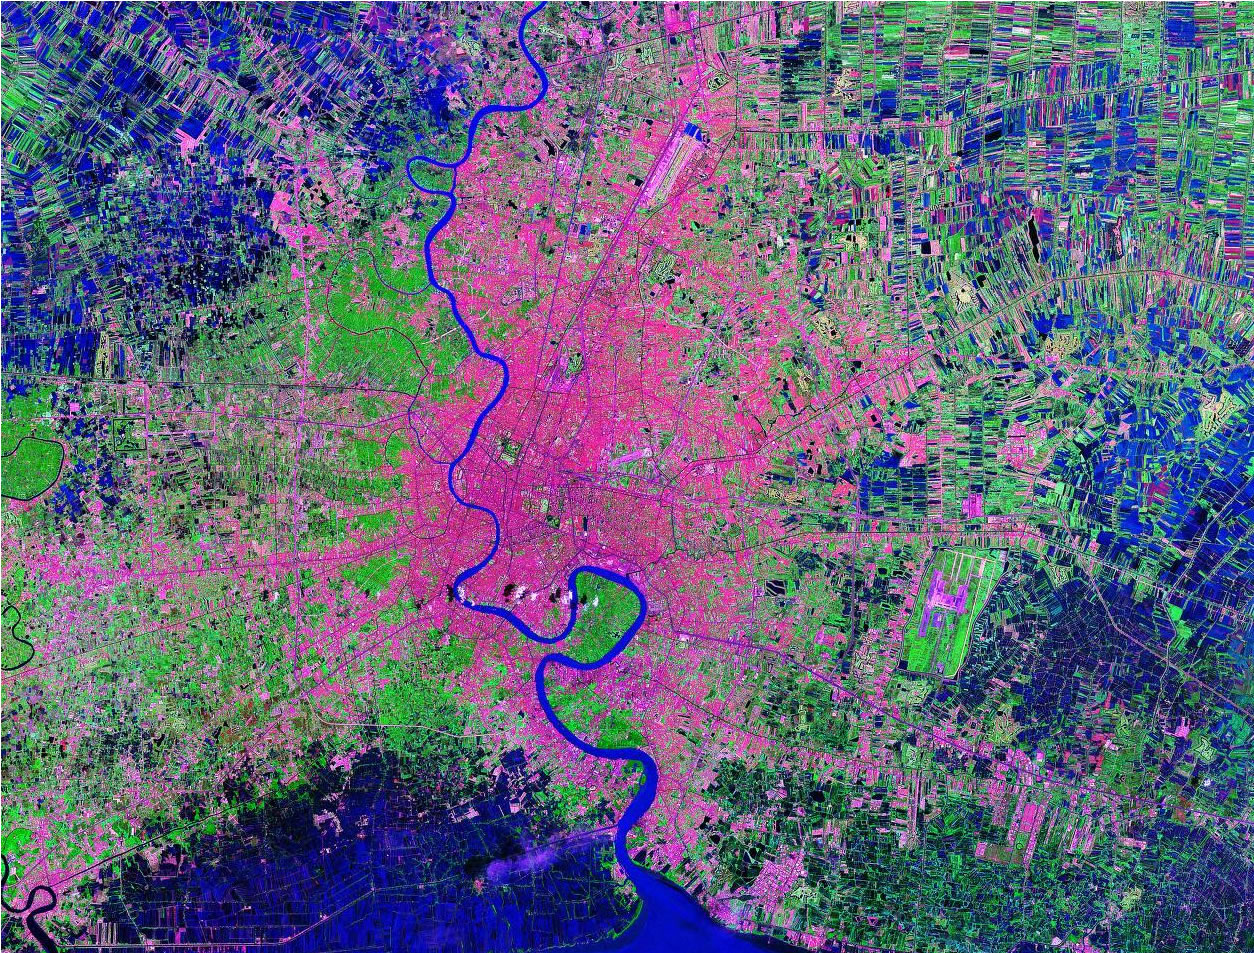 Bangkok Thailand satellite image map